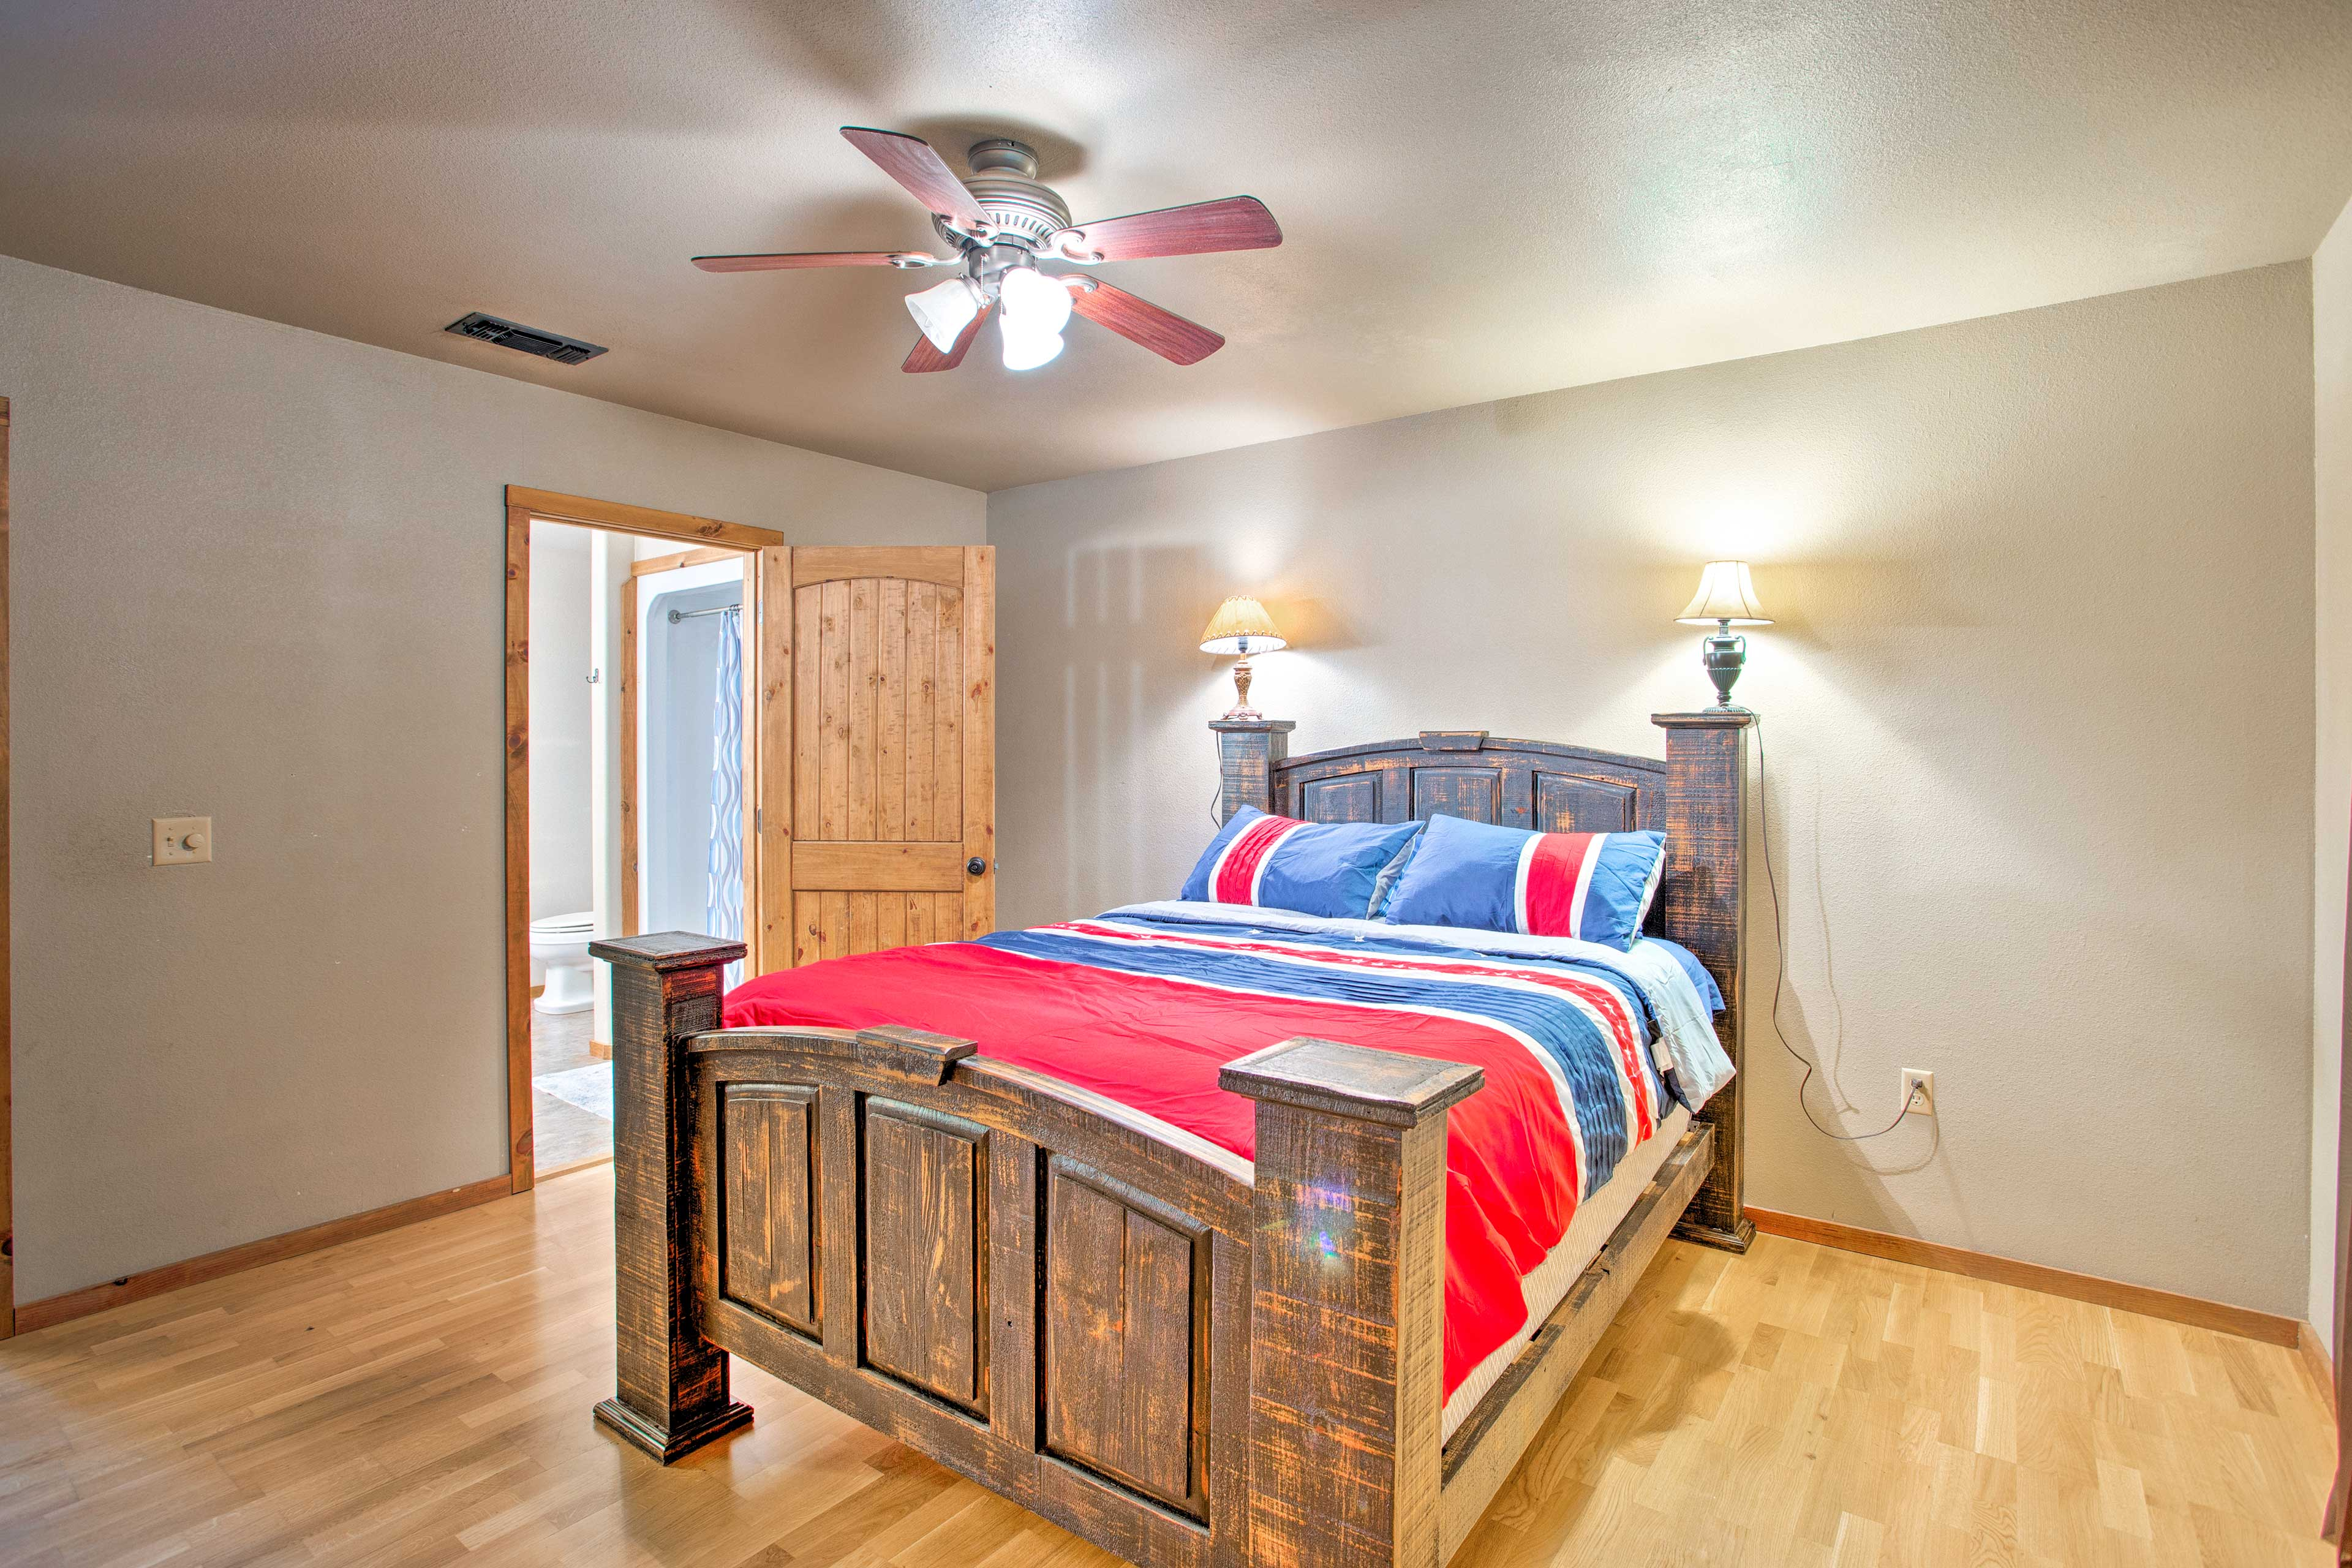 Allow the ceiling fan's cool breeze to lull you to sleep.